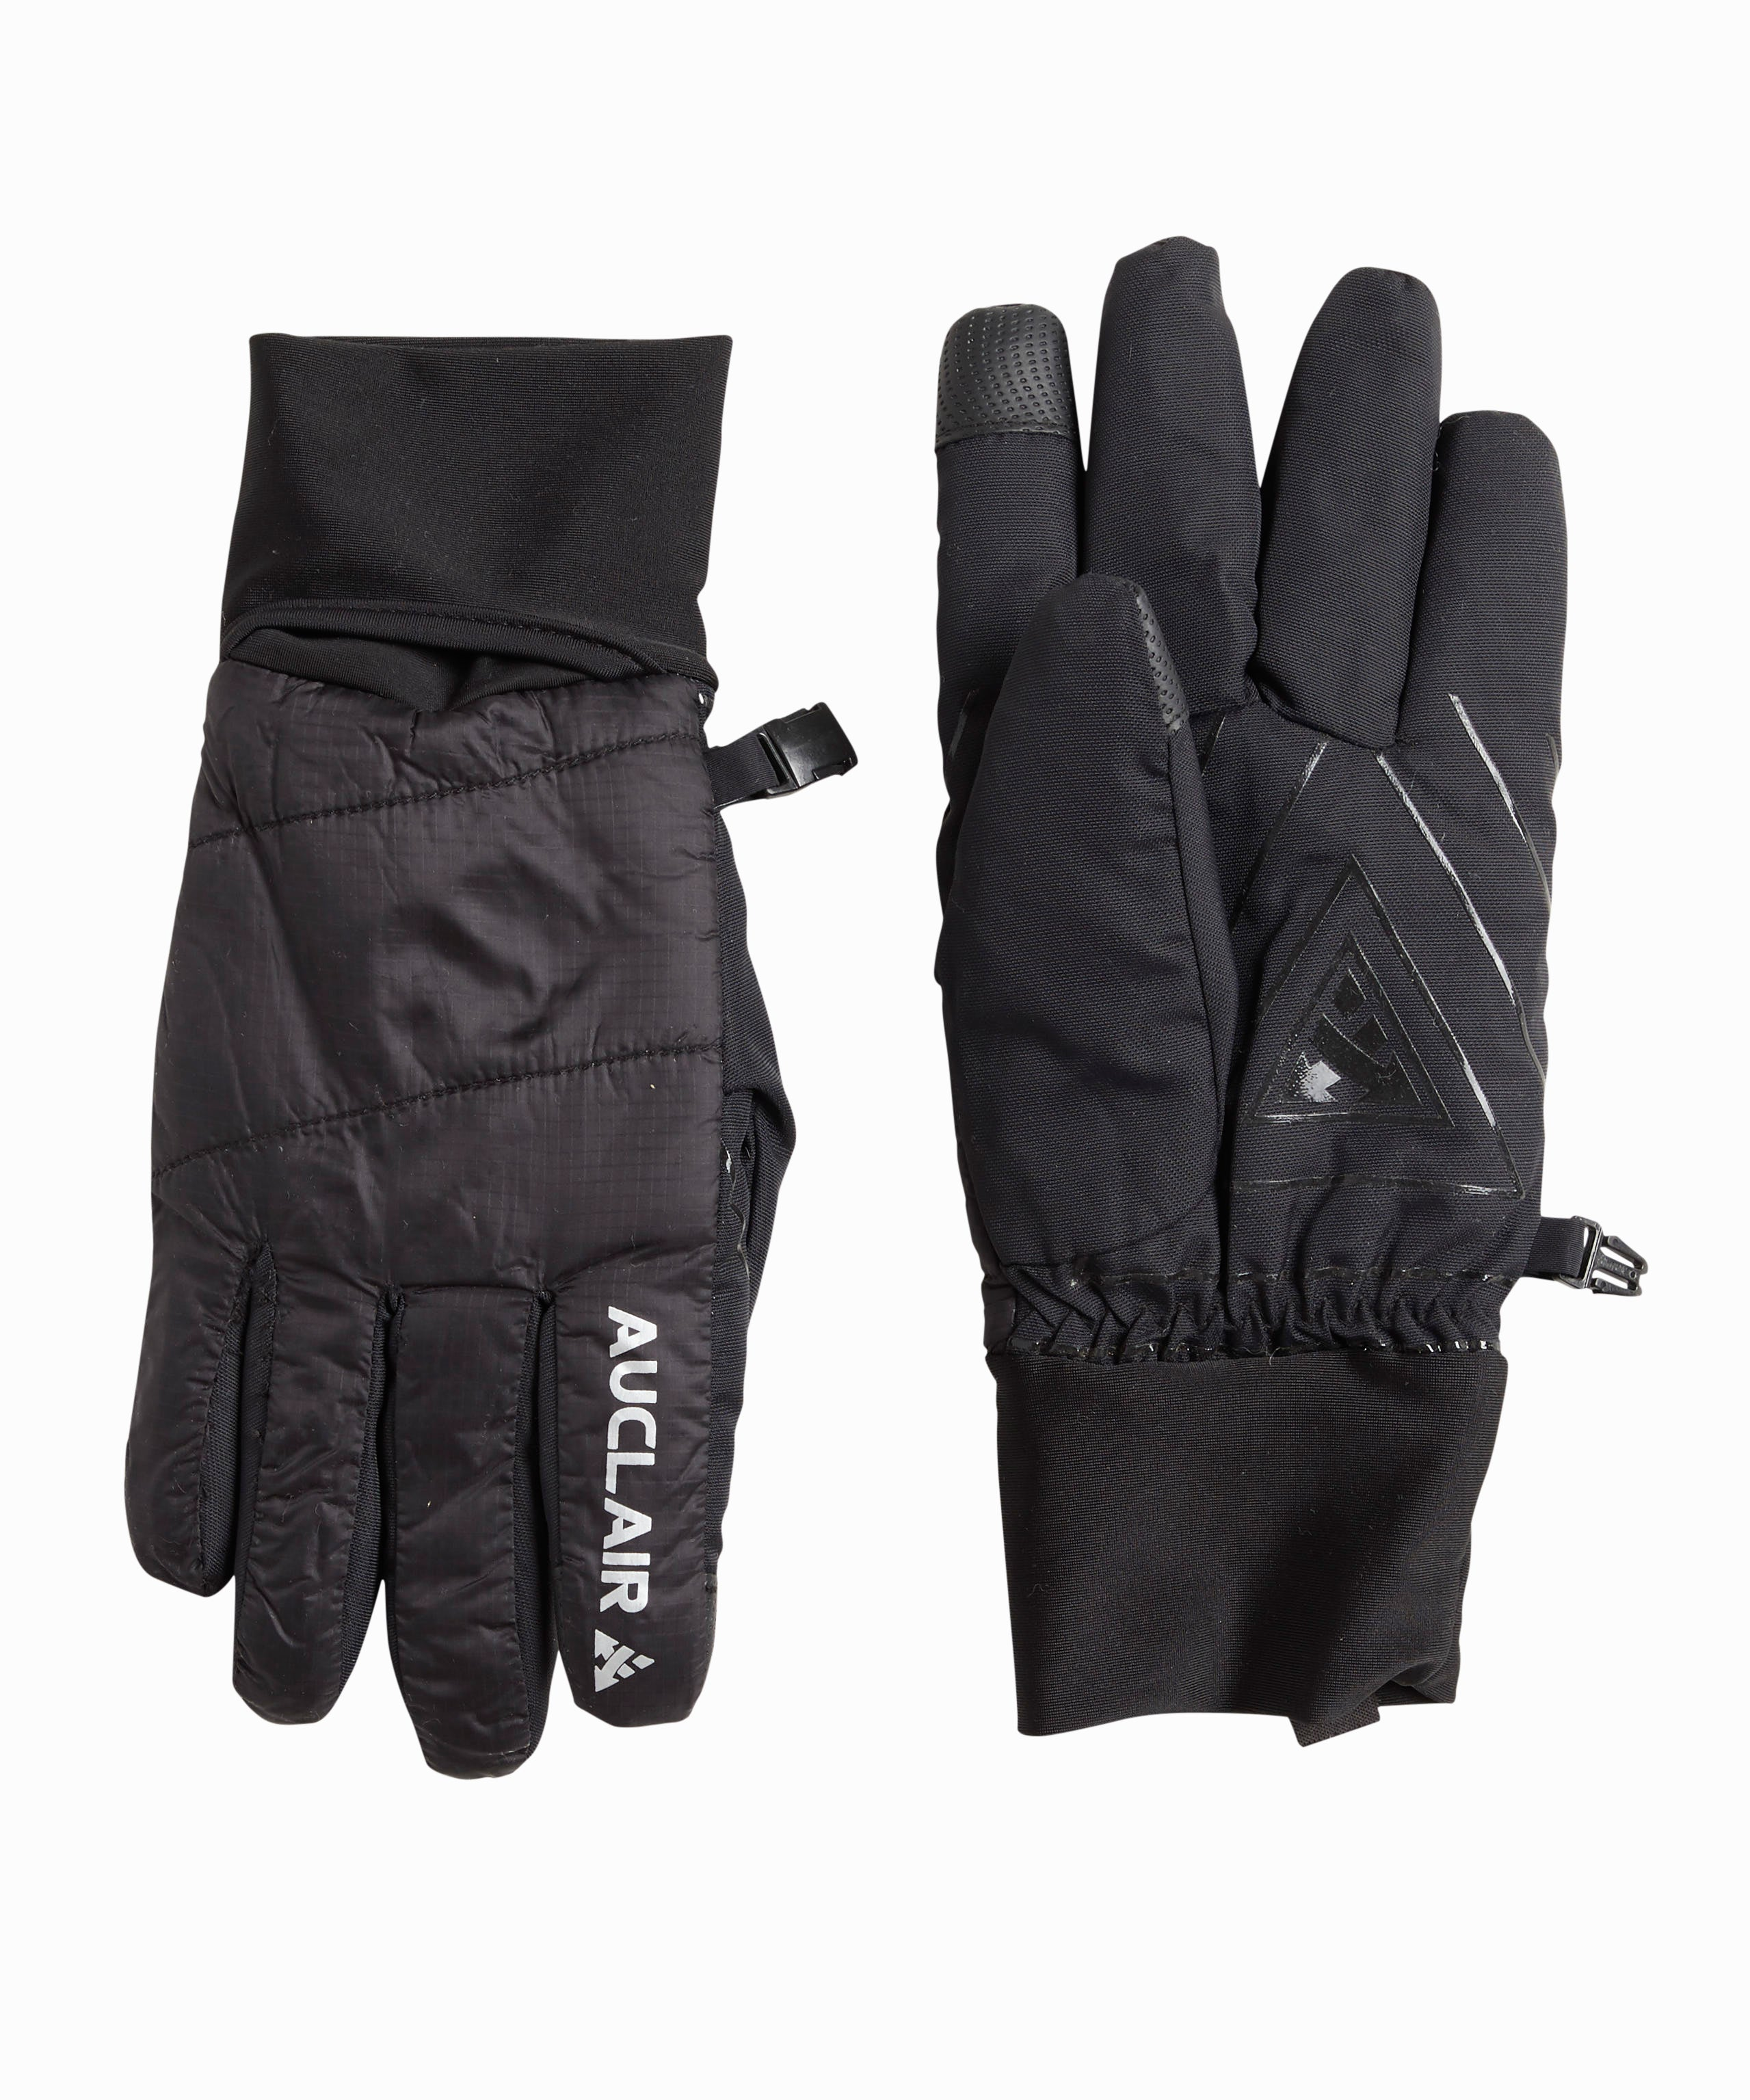 Refuge Gloves